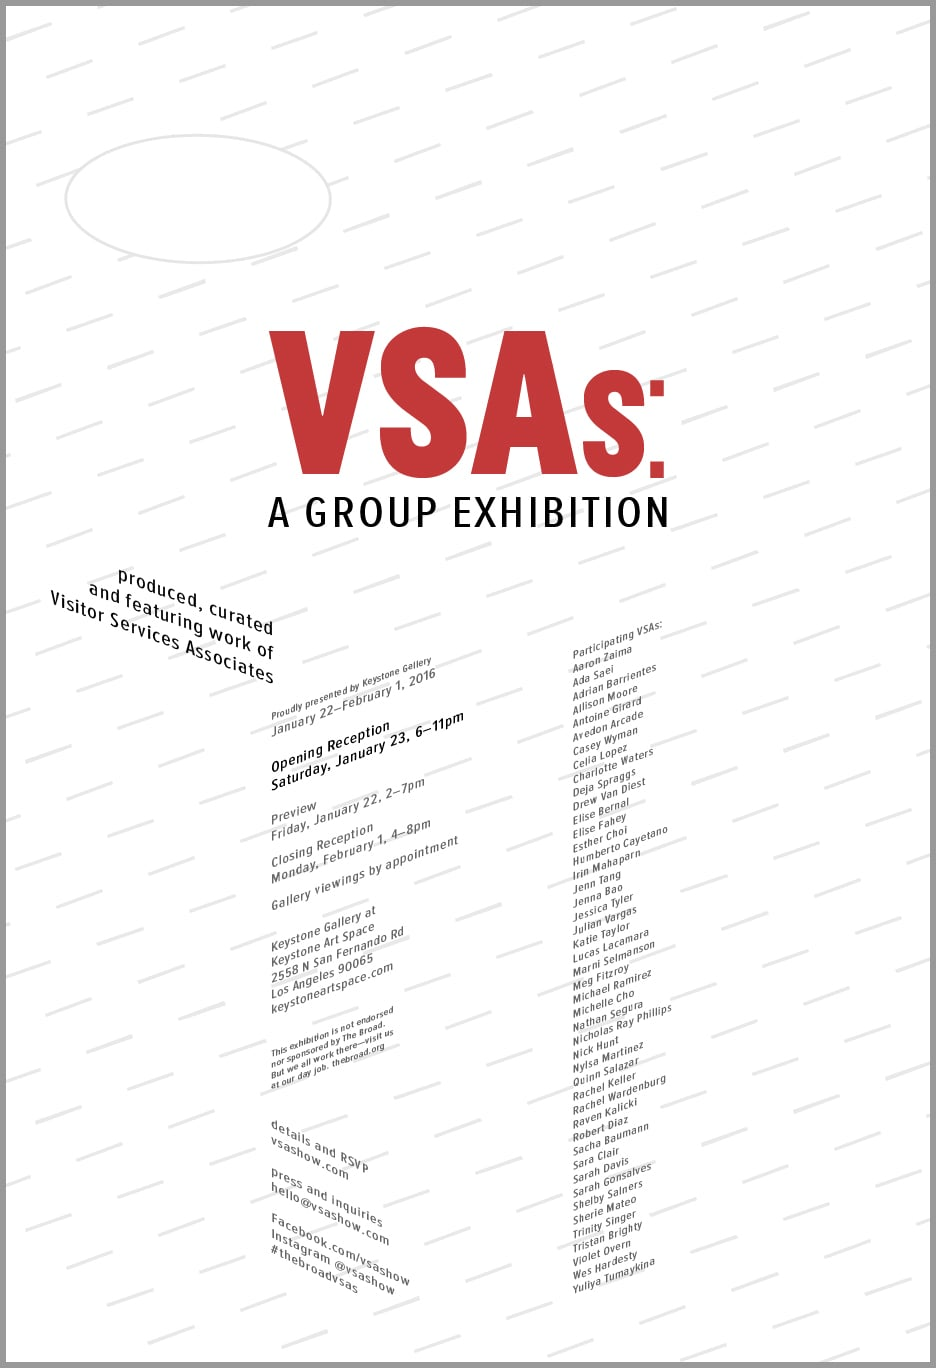 VSAs: A Group Exhibition at Keystone Art Space, January 22–February 1, 2016.